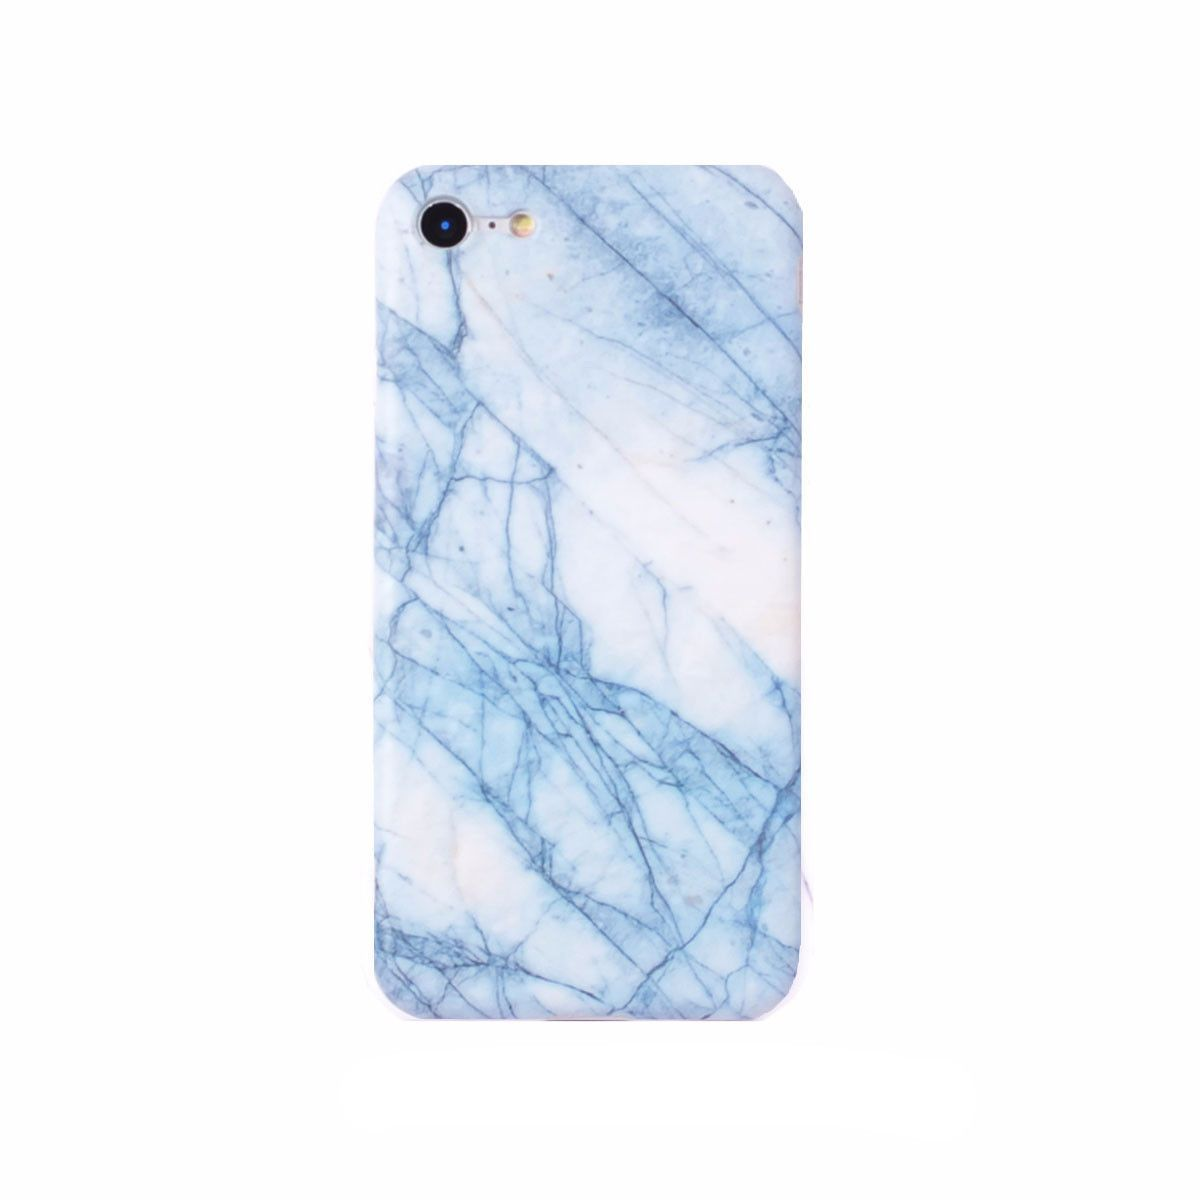 iPhone Case - Light Blue Marble